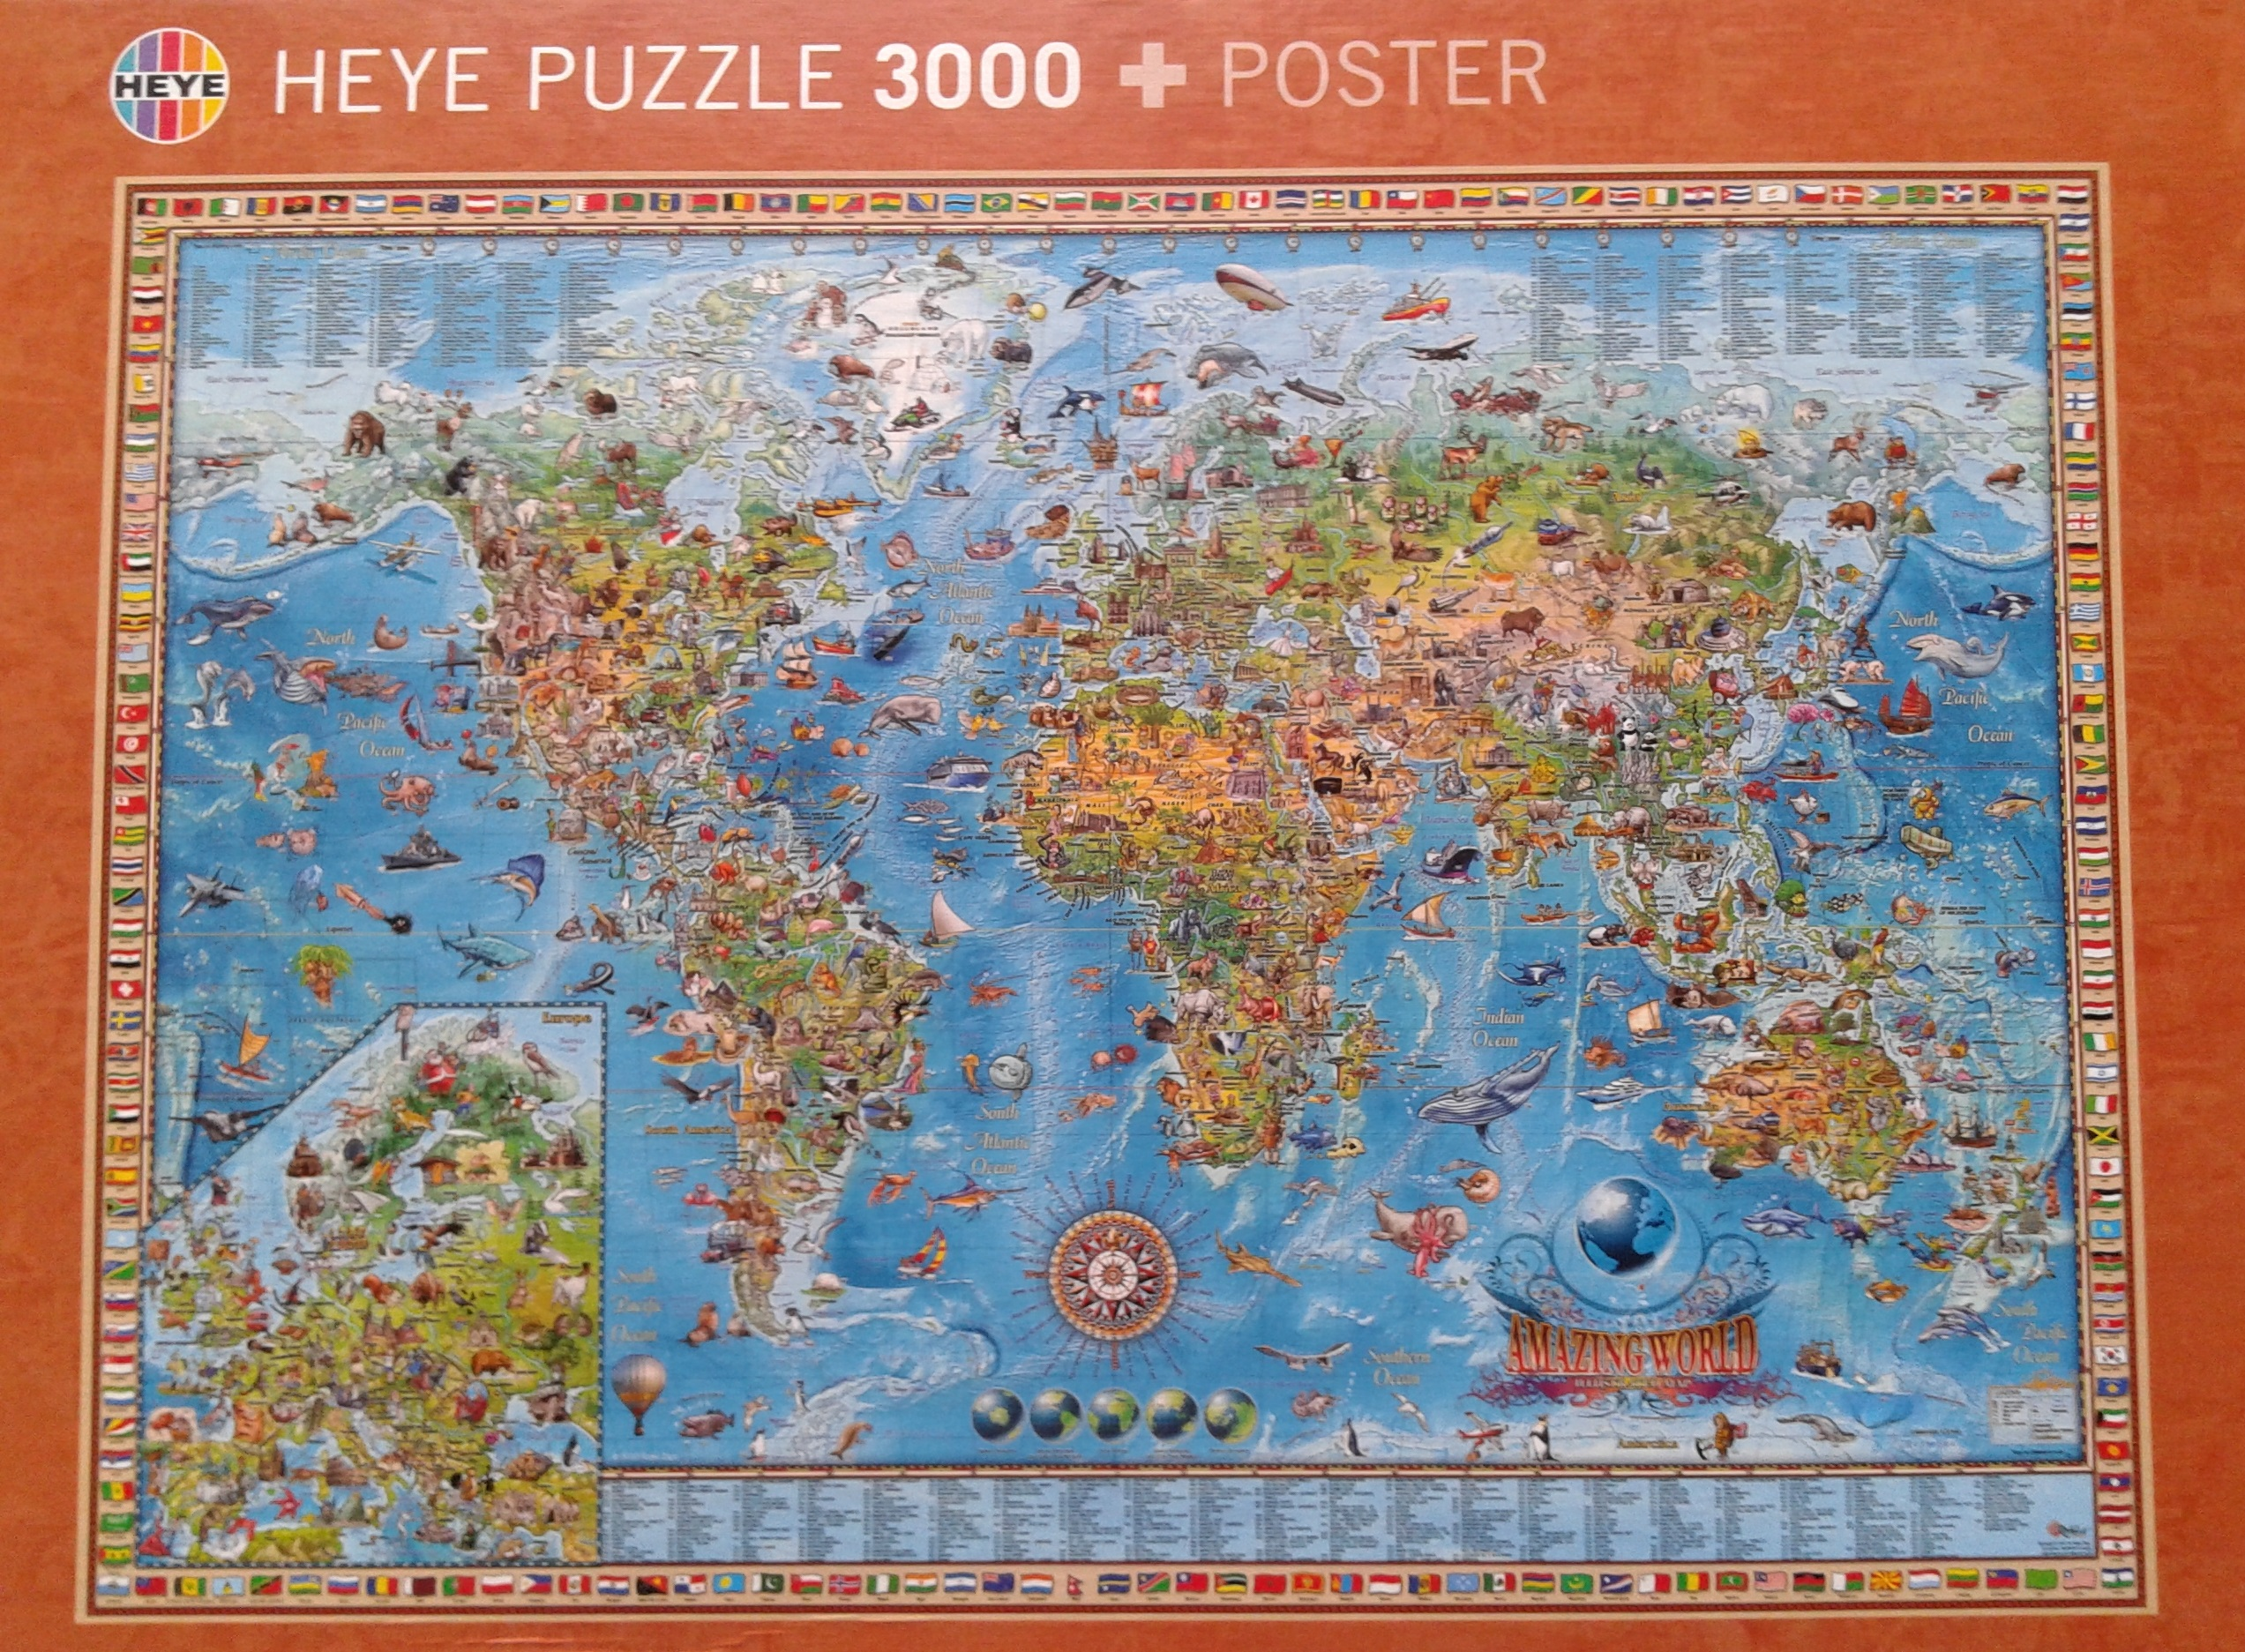 A great jigsaw puzzle and a great world map for kids